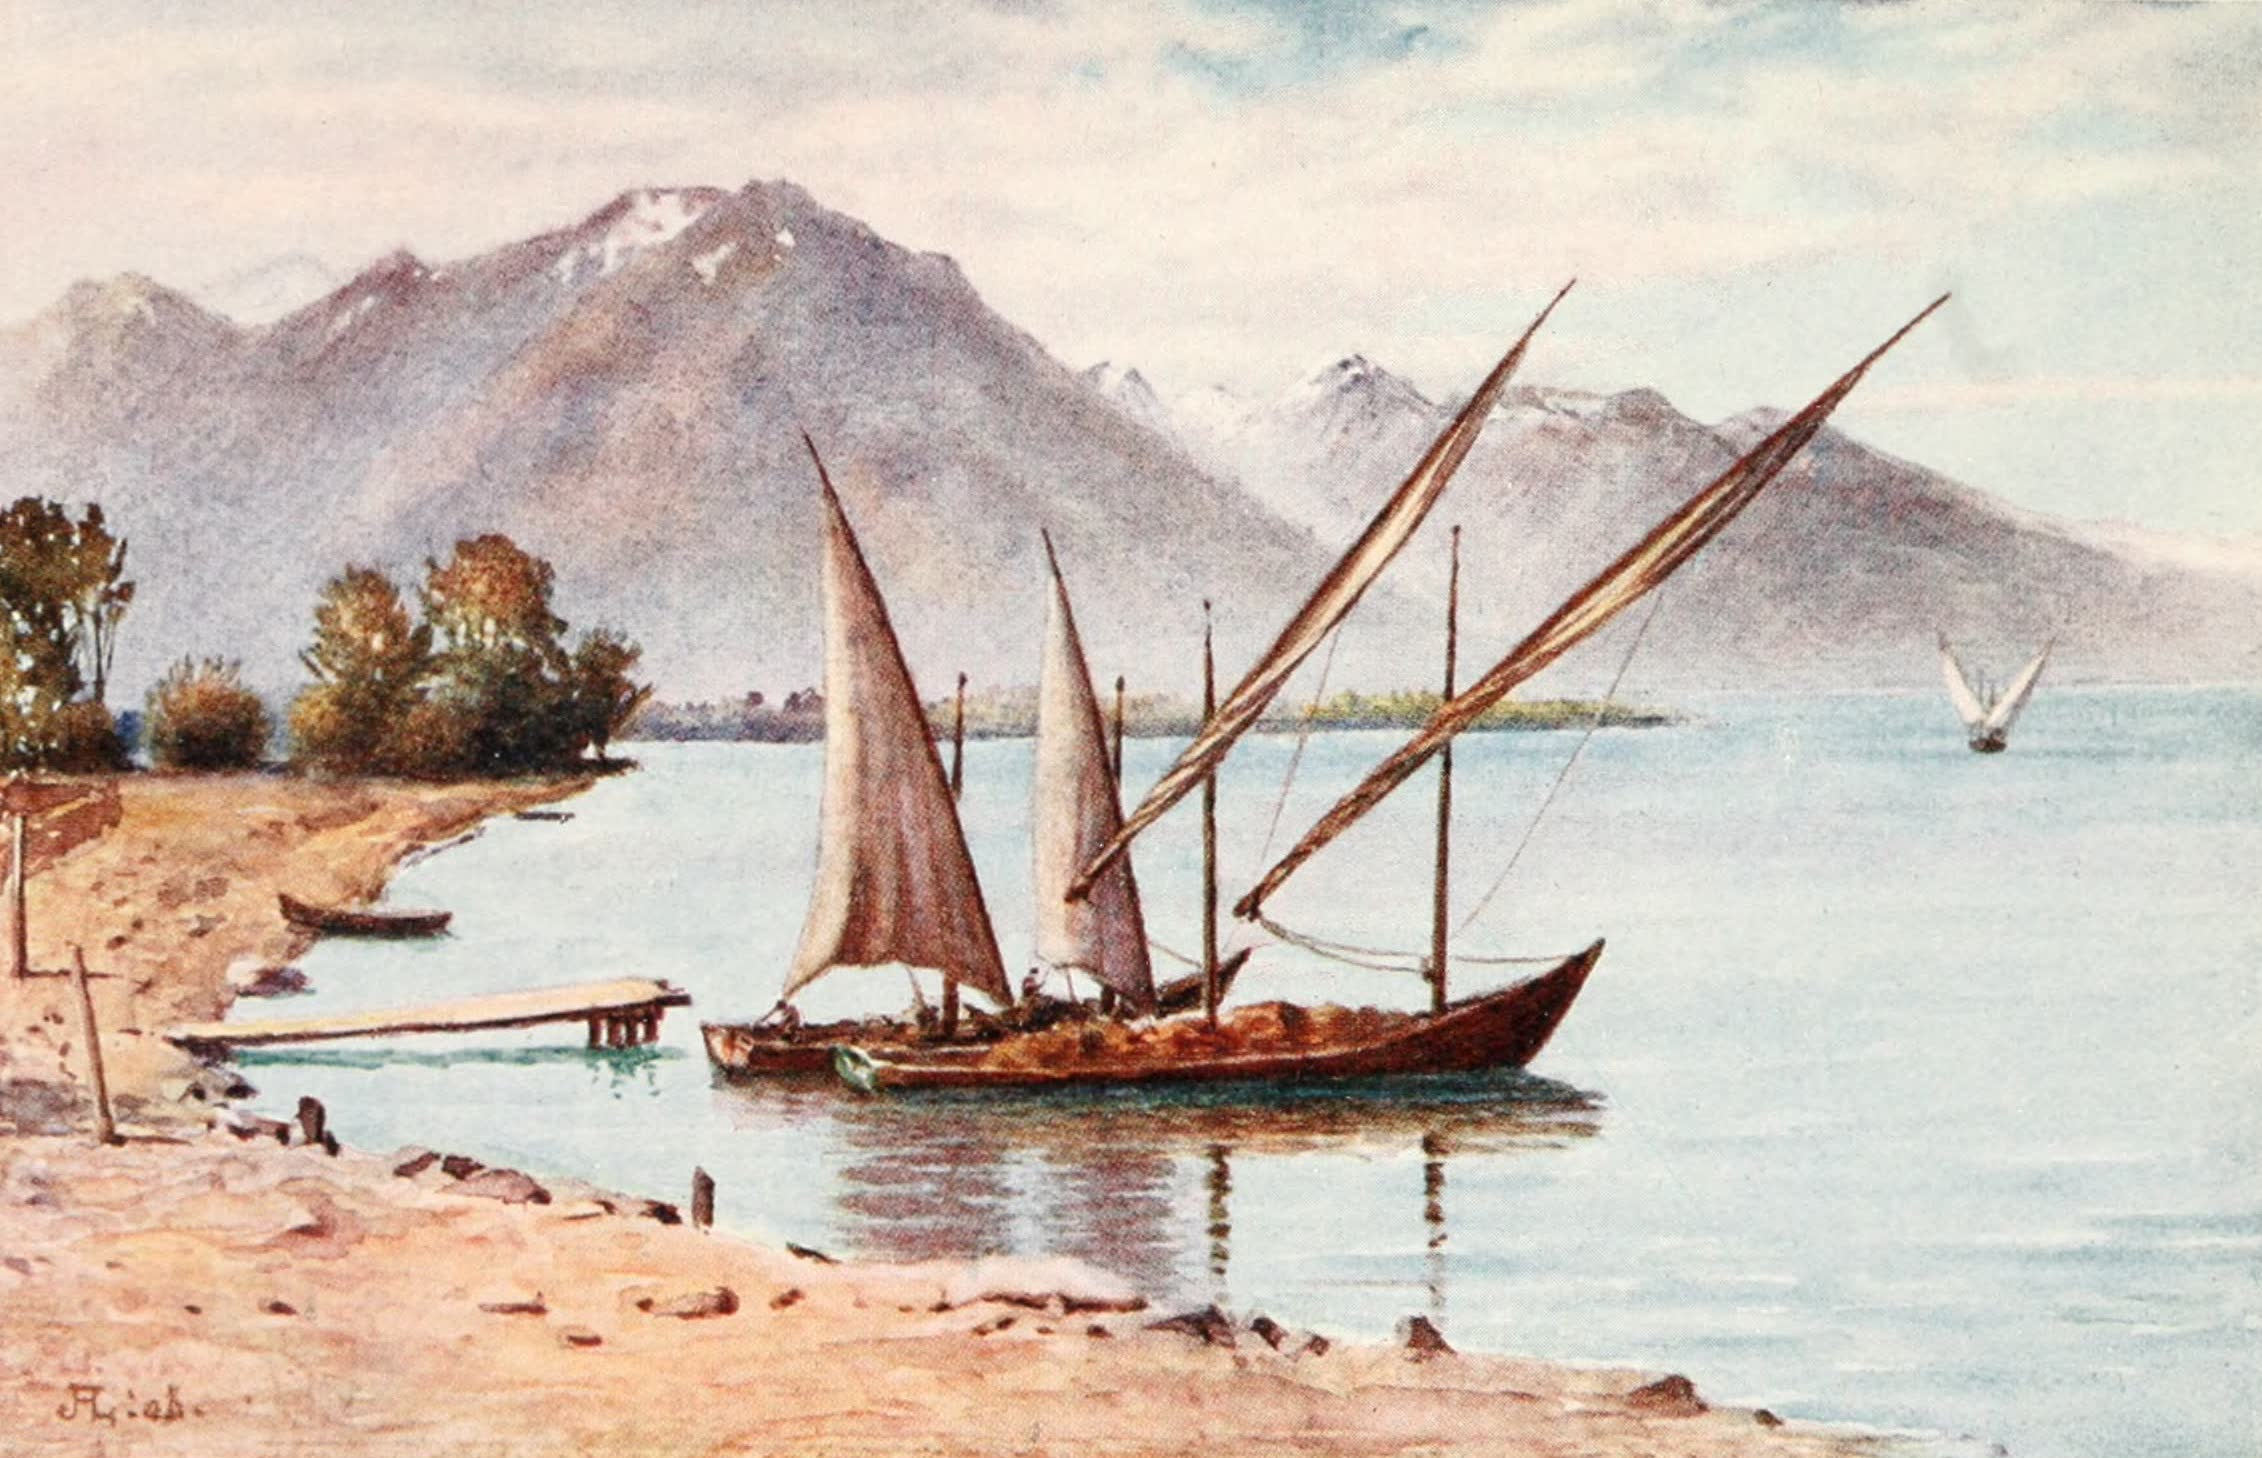 Montreux, Painted and Described - The Savoy Alps from Villeneuve (1908)